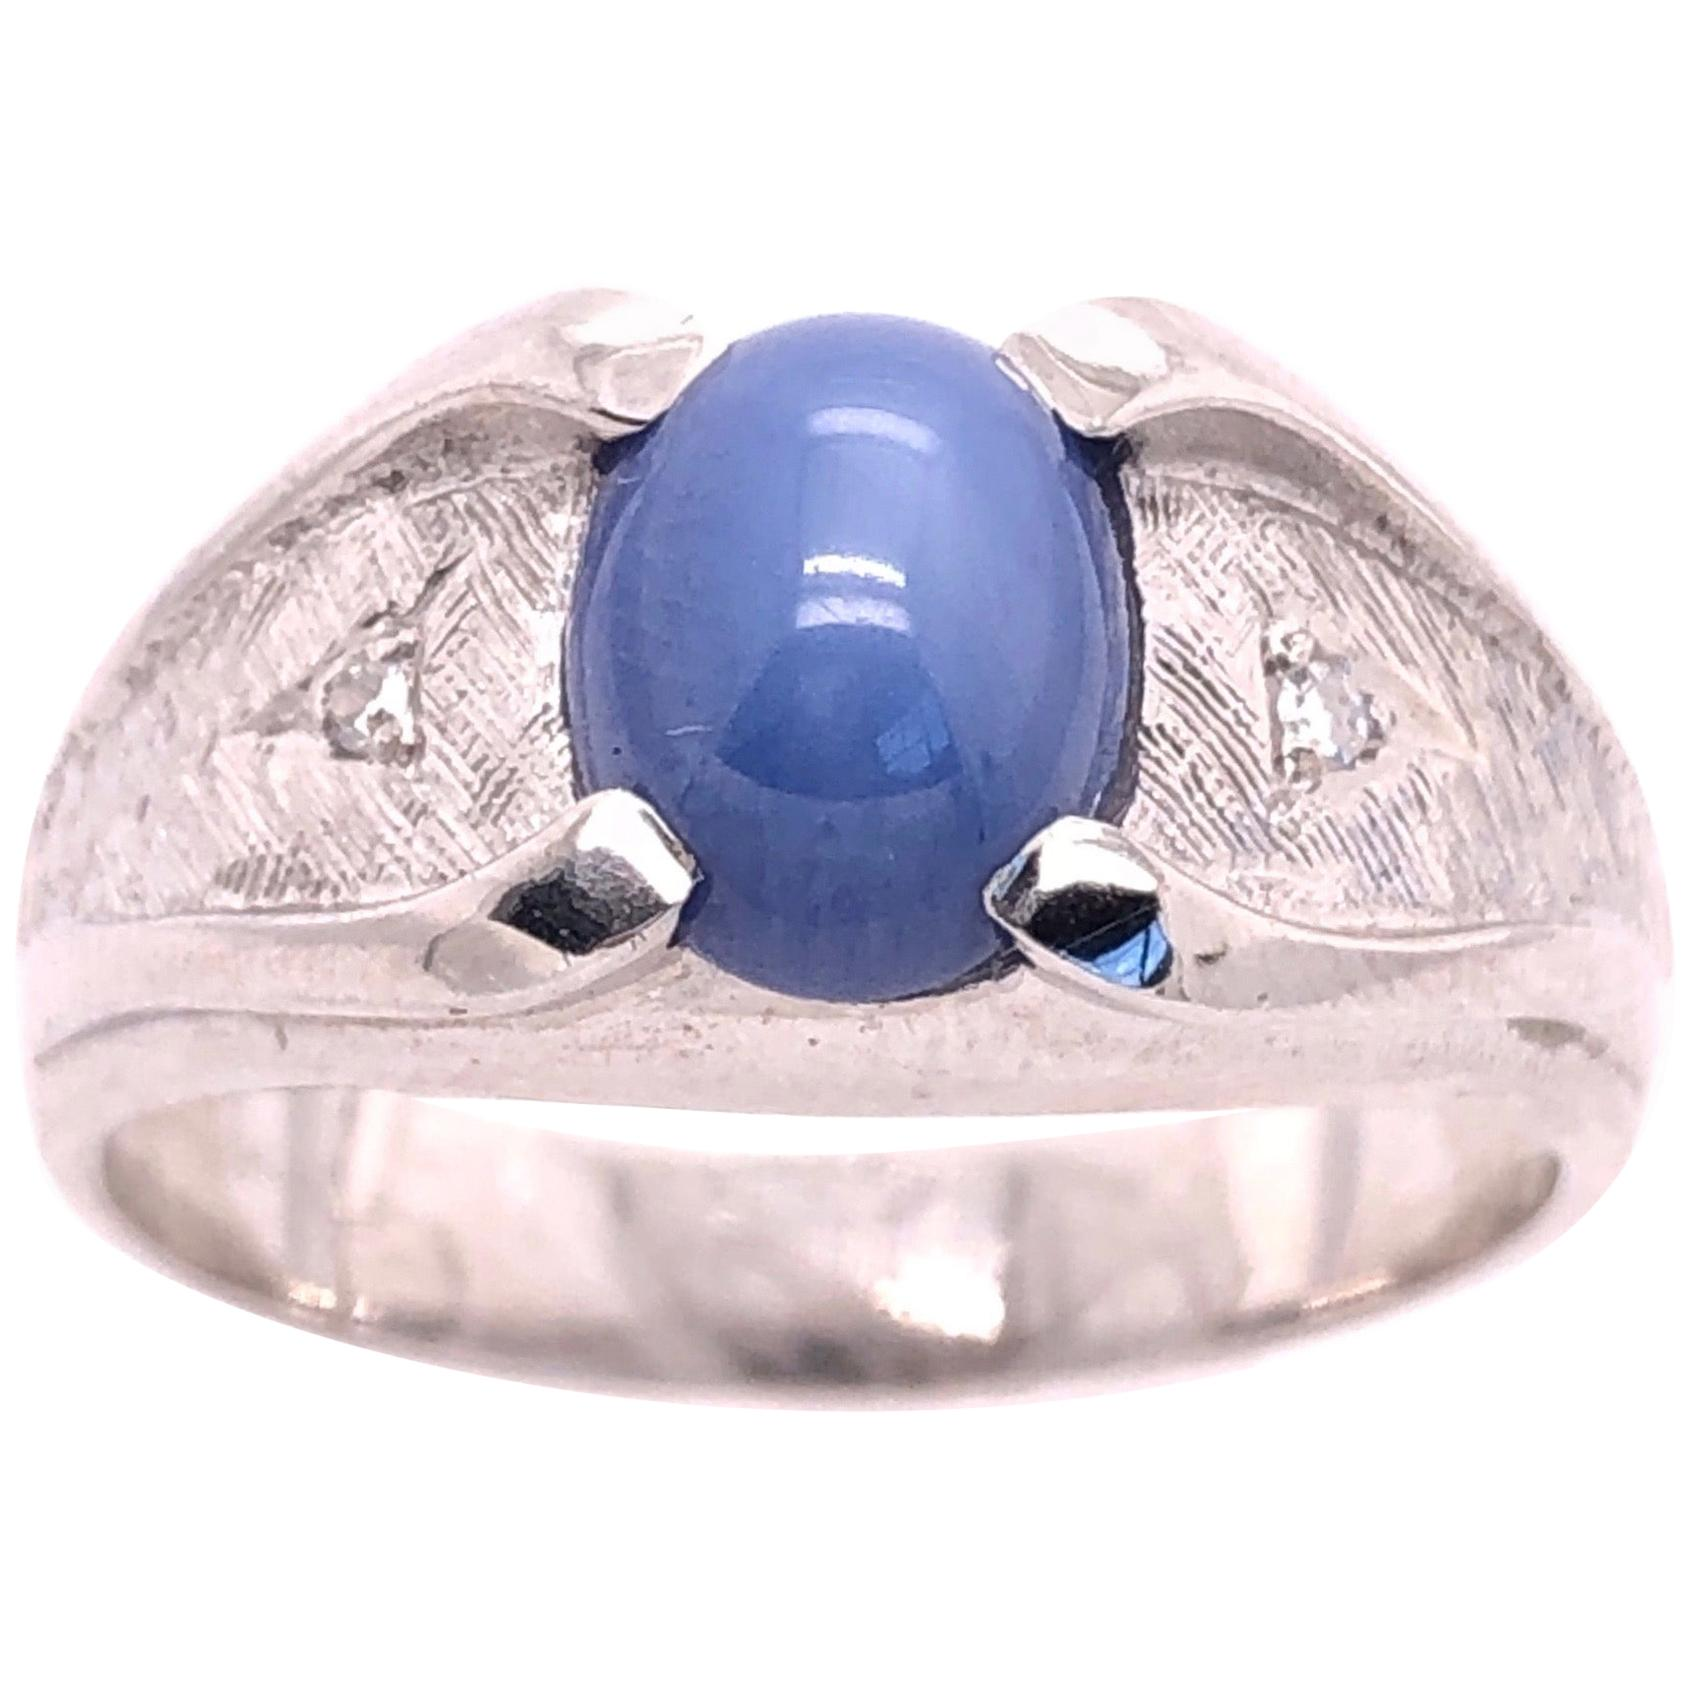 14 Karat White Gold Oval Sapphire Cabochon Ring with Diamond Accents